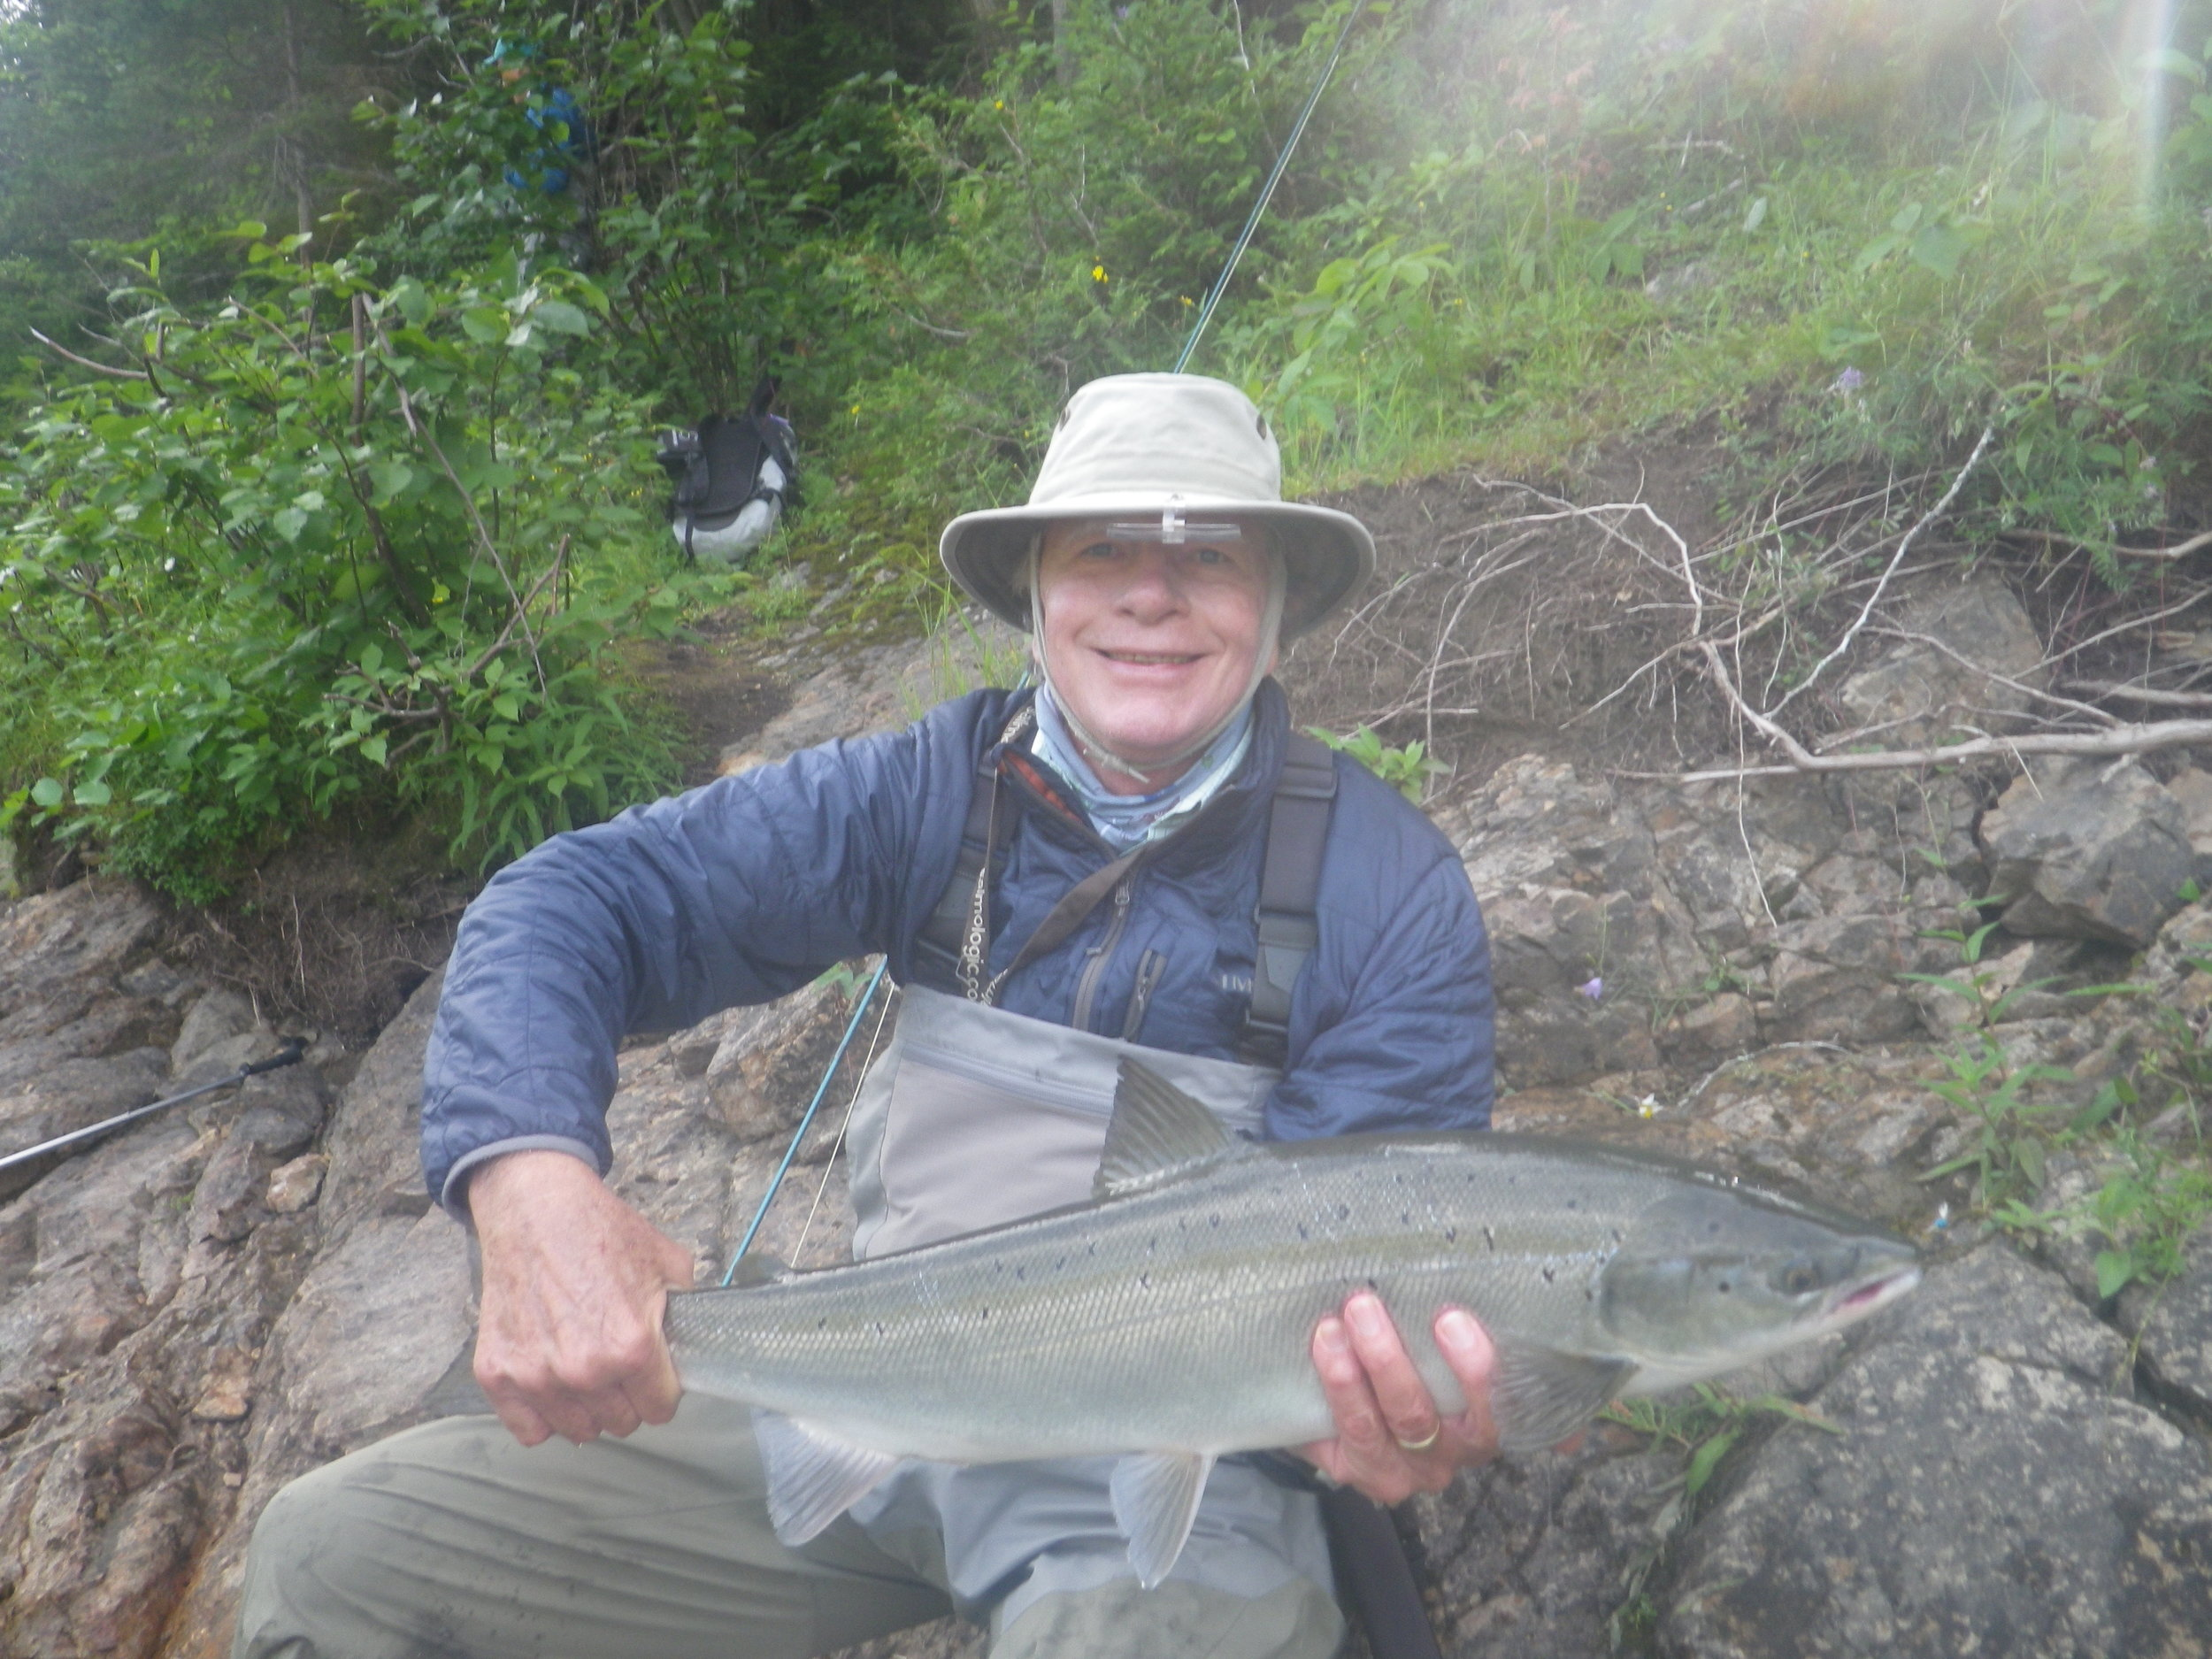 Stewart Seibens has been a guest at Camp Bonaventure for many years! Here he is with his first salmon of 2019! Congratulations Stewart